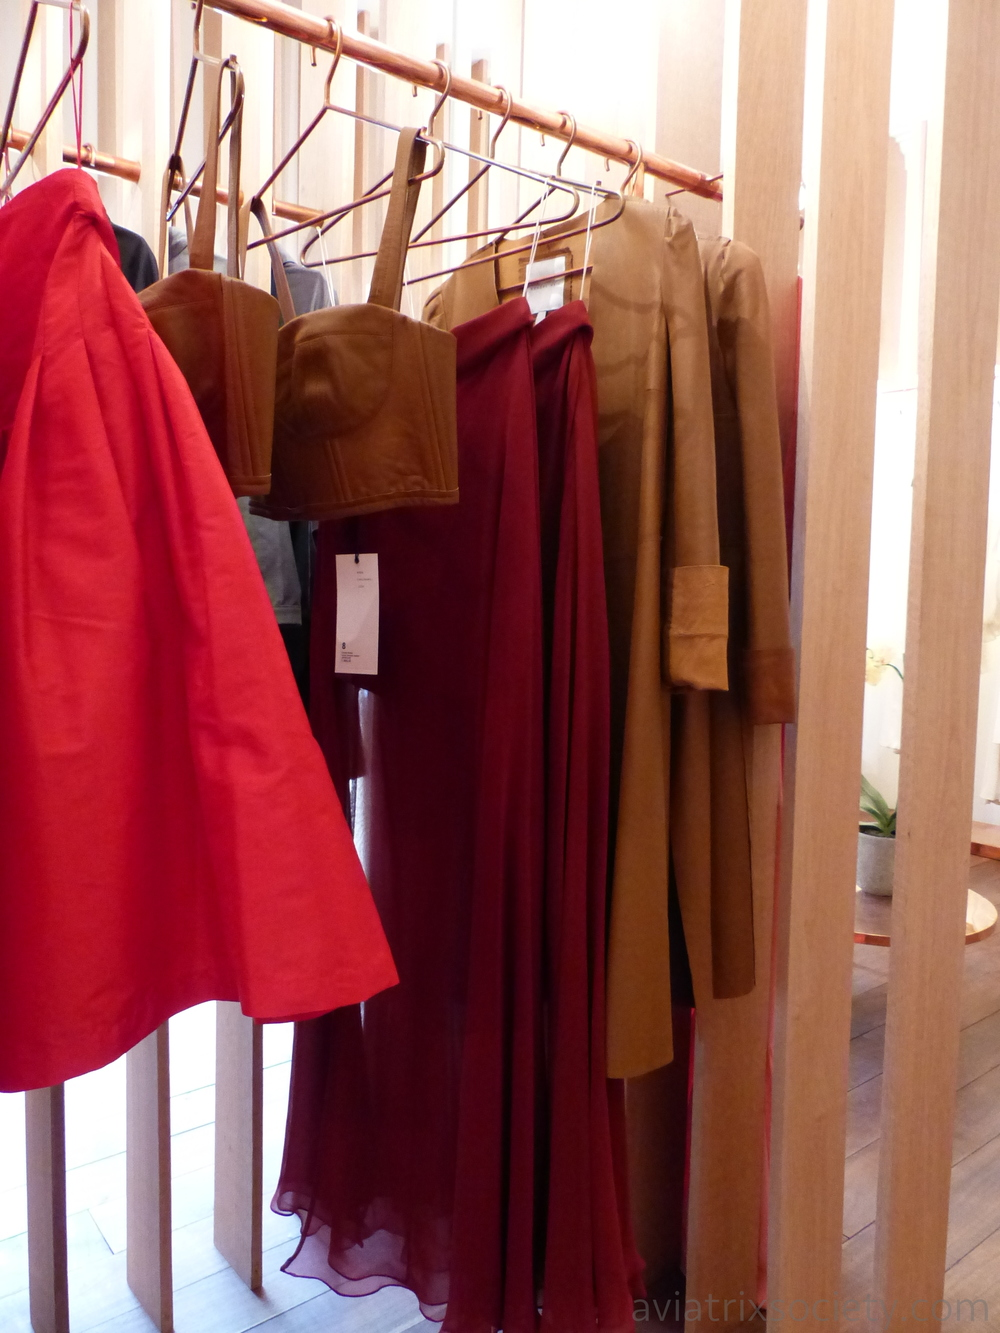 Full red skirts, tan leather bustiers, long leather jackets at Sandra Weil in Polanco Mexico City cdmx